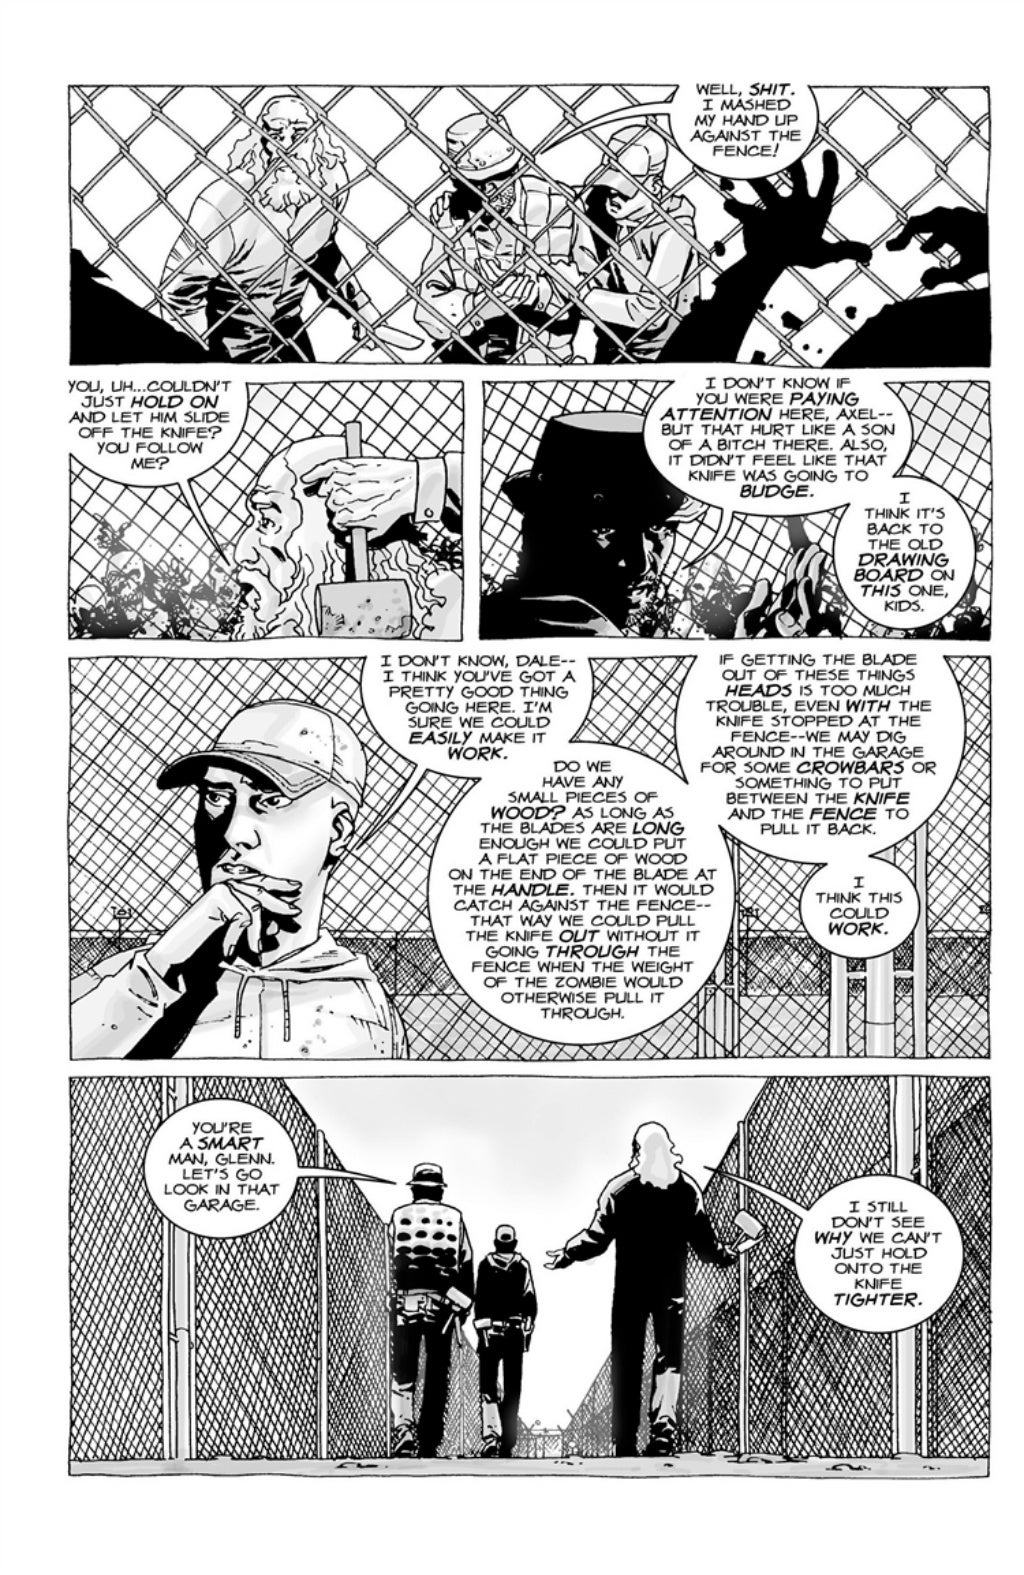 The Walking Dead volume 3 page 99